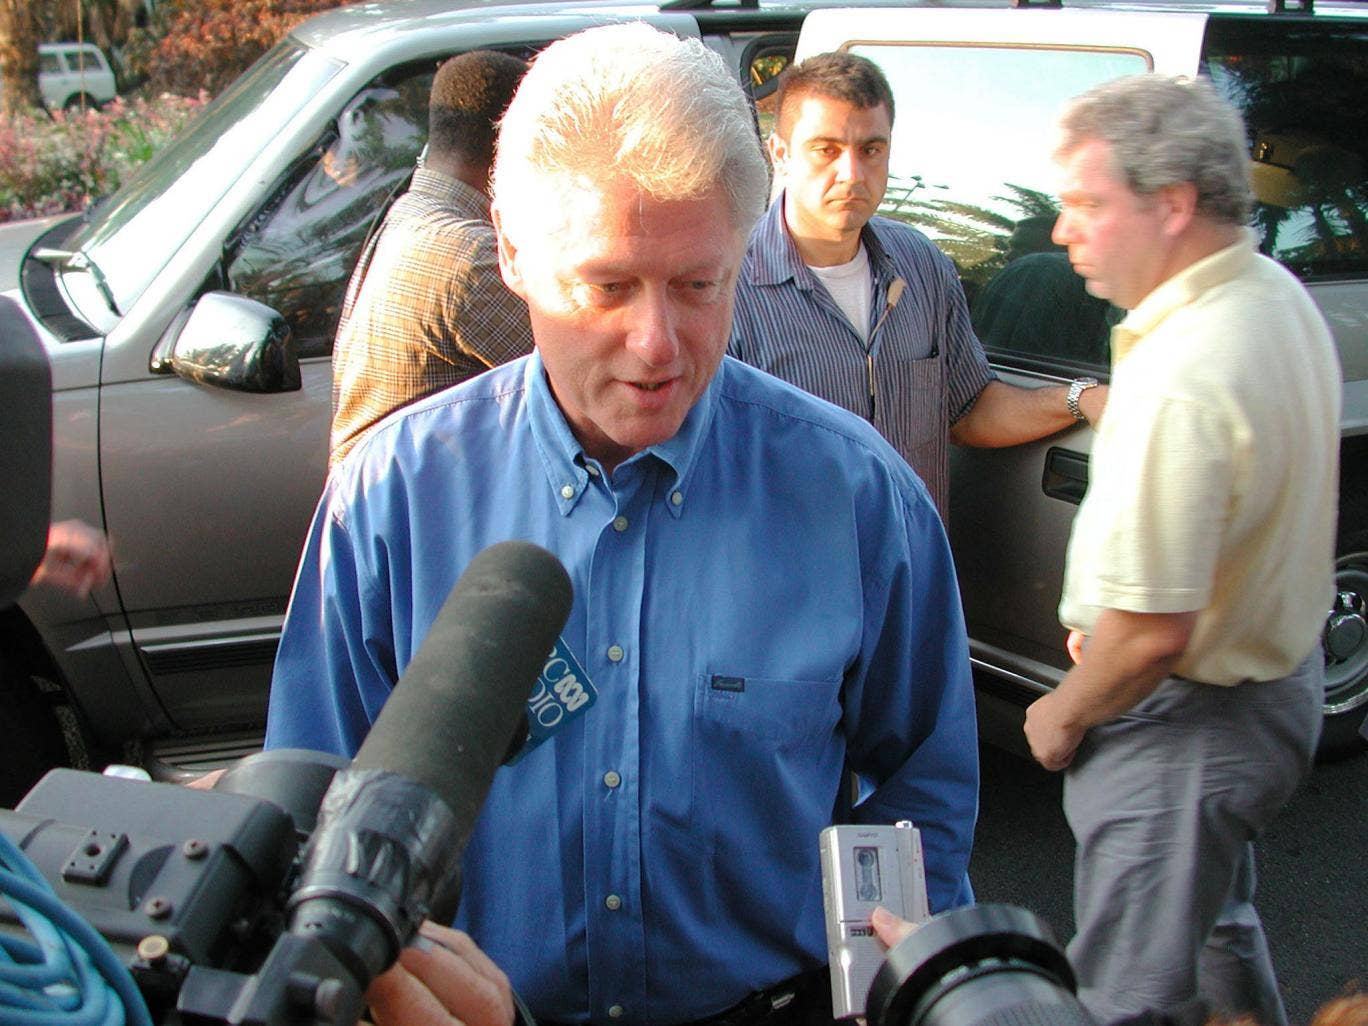 Former U.S. President Bill Clinton speaks with the media during a press conference September 12, 2001